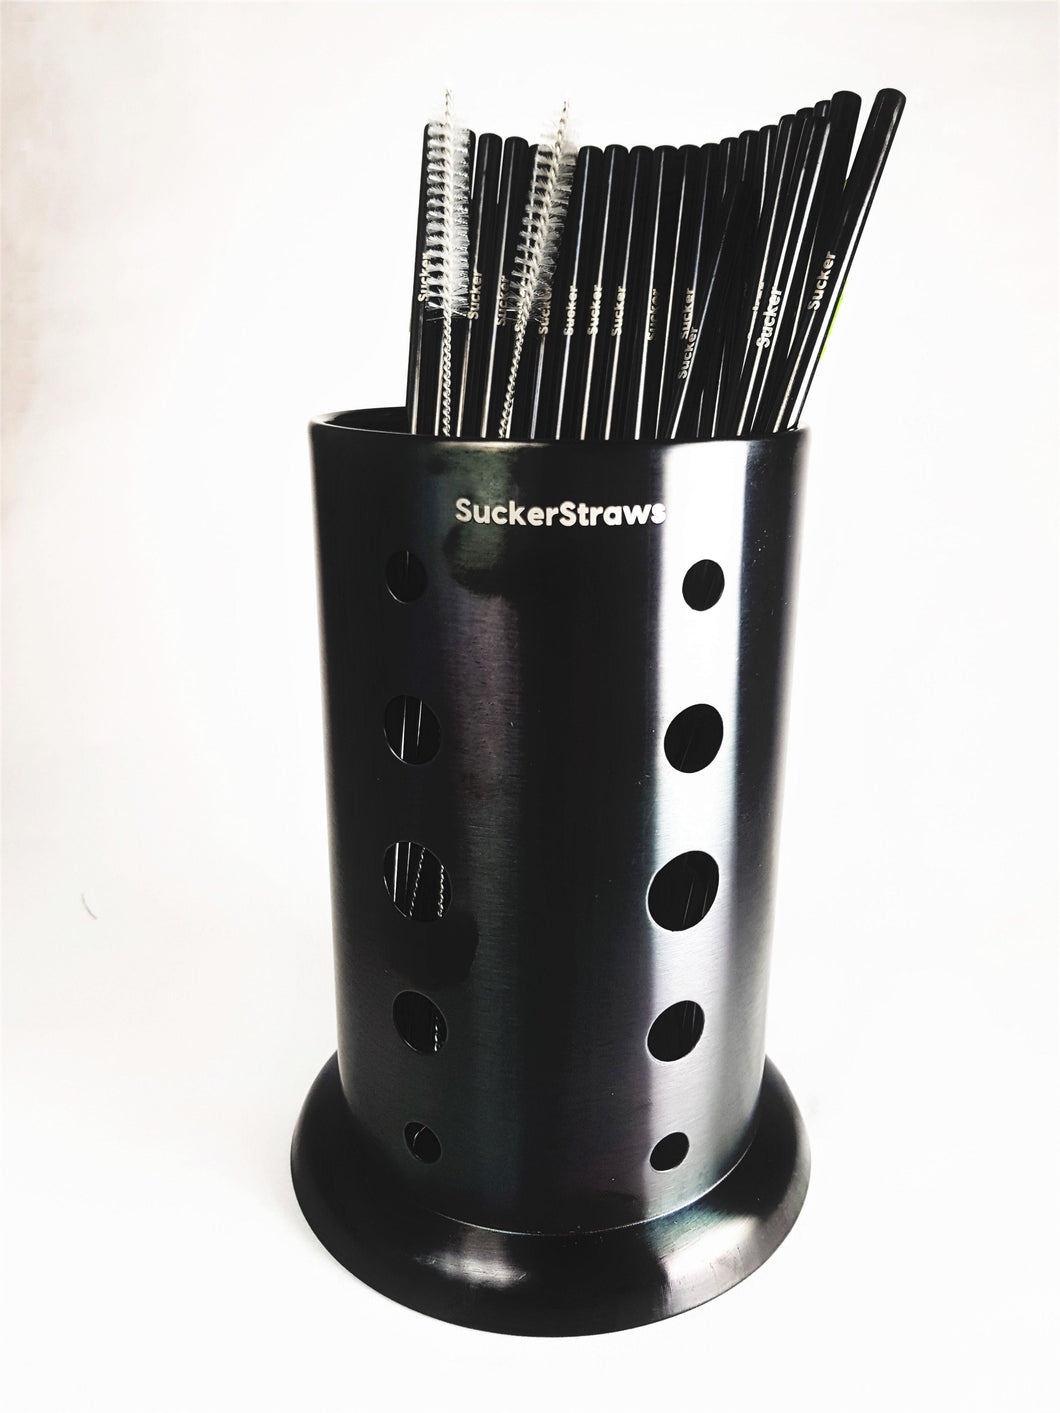 Reusable Metal Straw Huge Venue Starter Set - Product photo for Huge Venue Starter Set showing the SuckerStraws glasswasher washing basket with metal straws and cleaning brushes displayed  SuckerStraws are bulk wholesale reusable metal straws for bars and restaurants available worldwide.